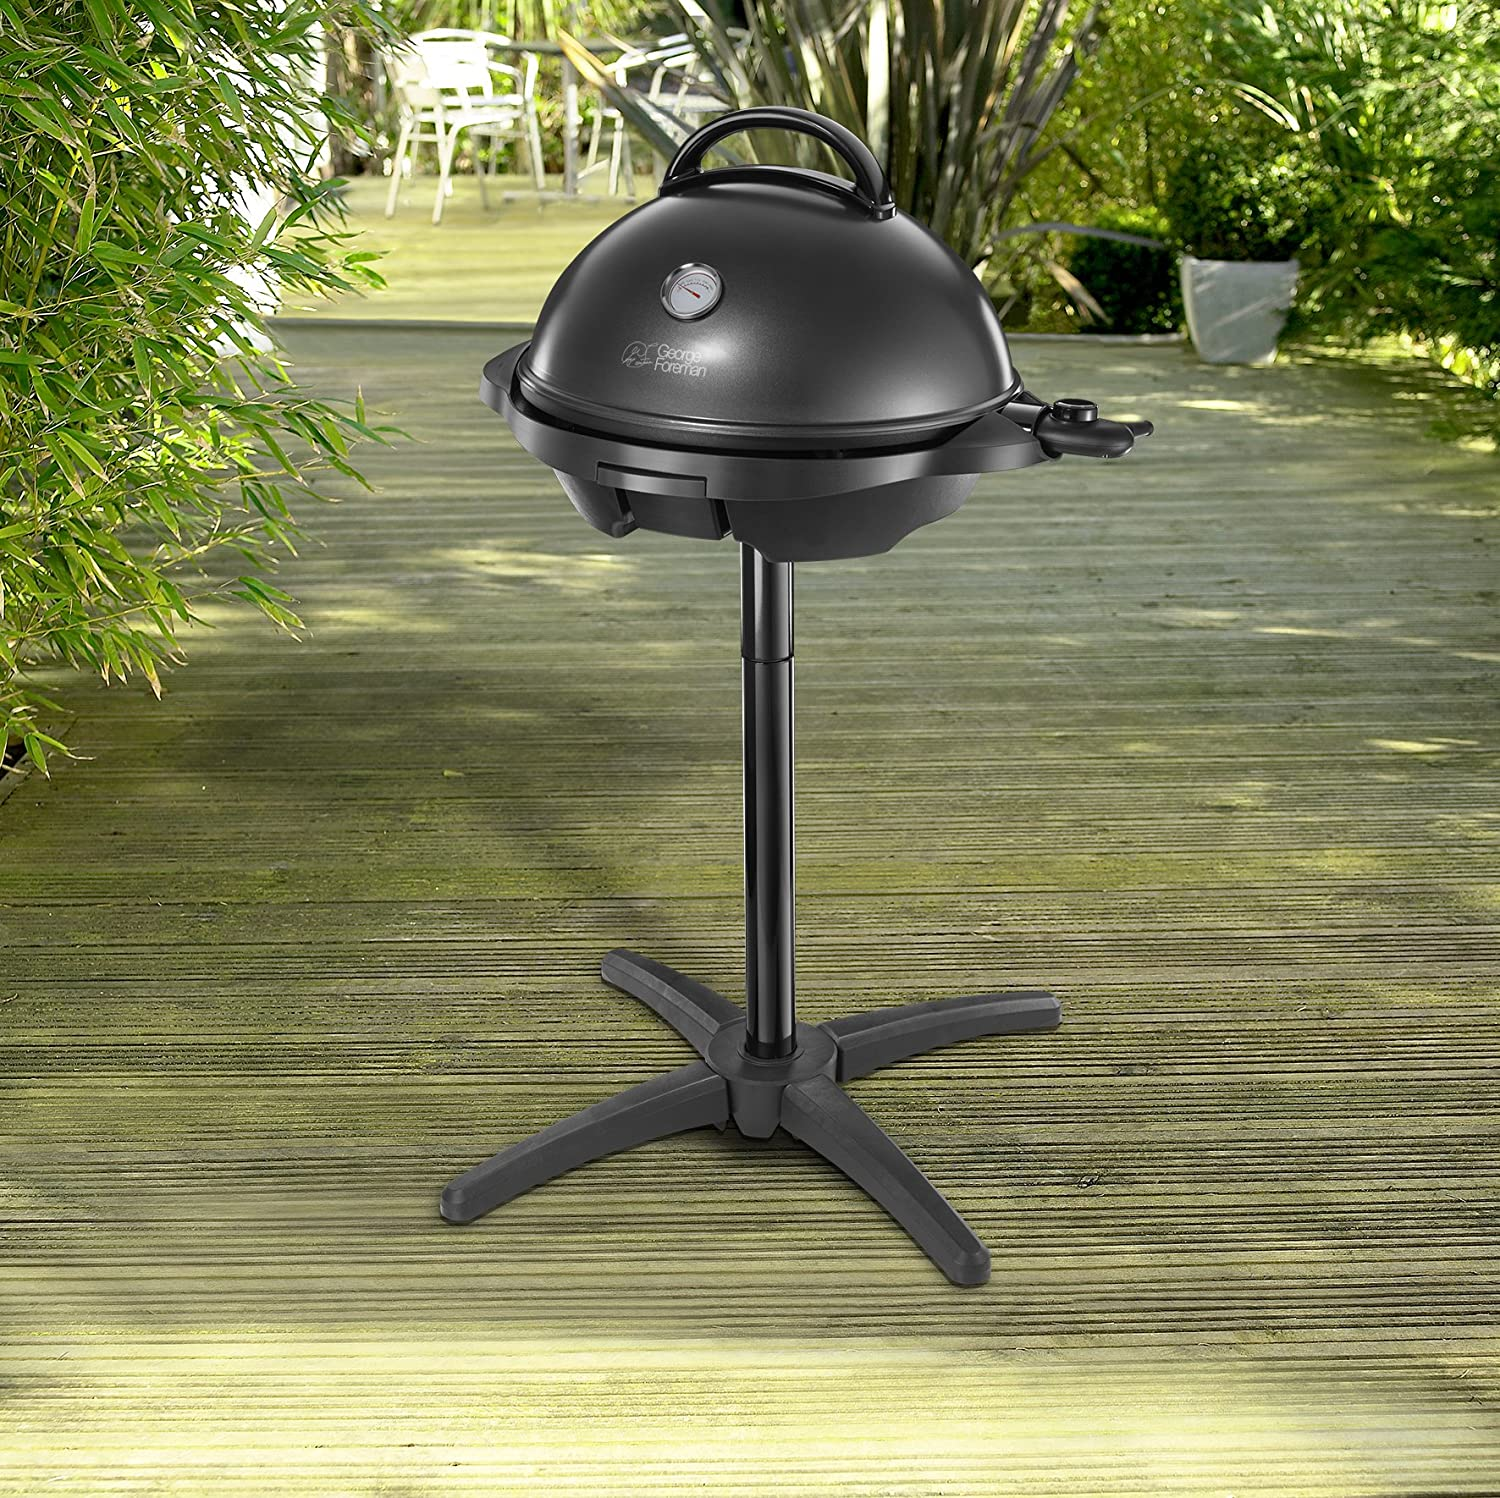 George Foreman 22460 Indoor and Outdoor Grill - Black by ...